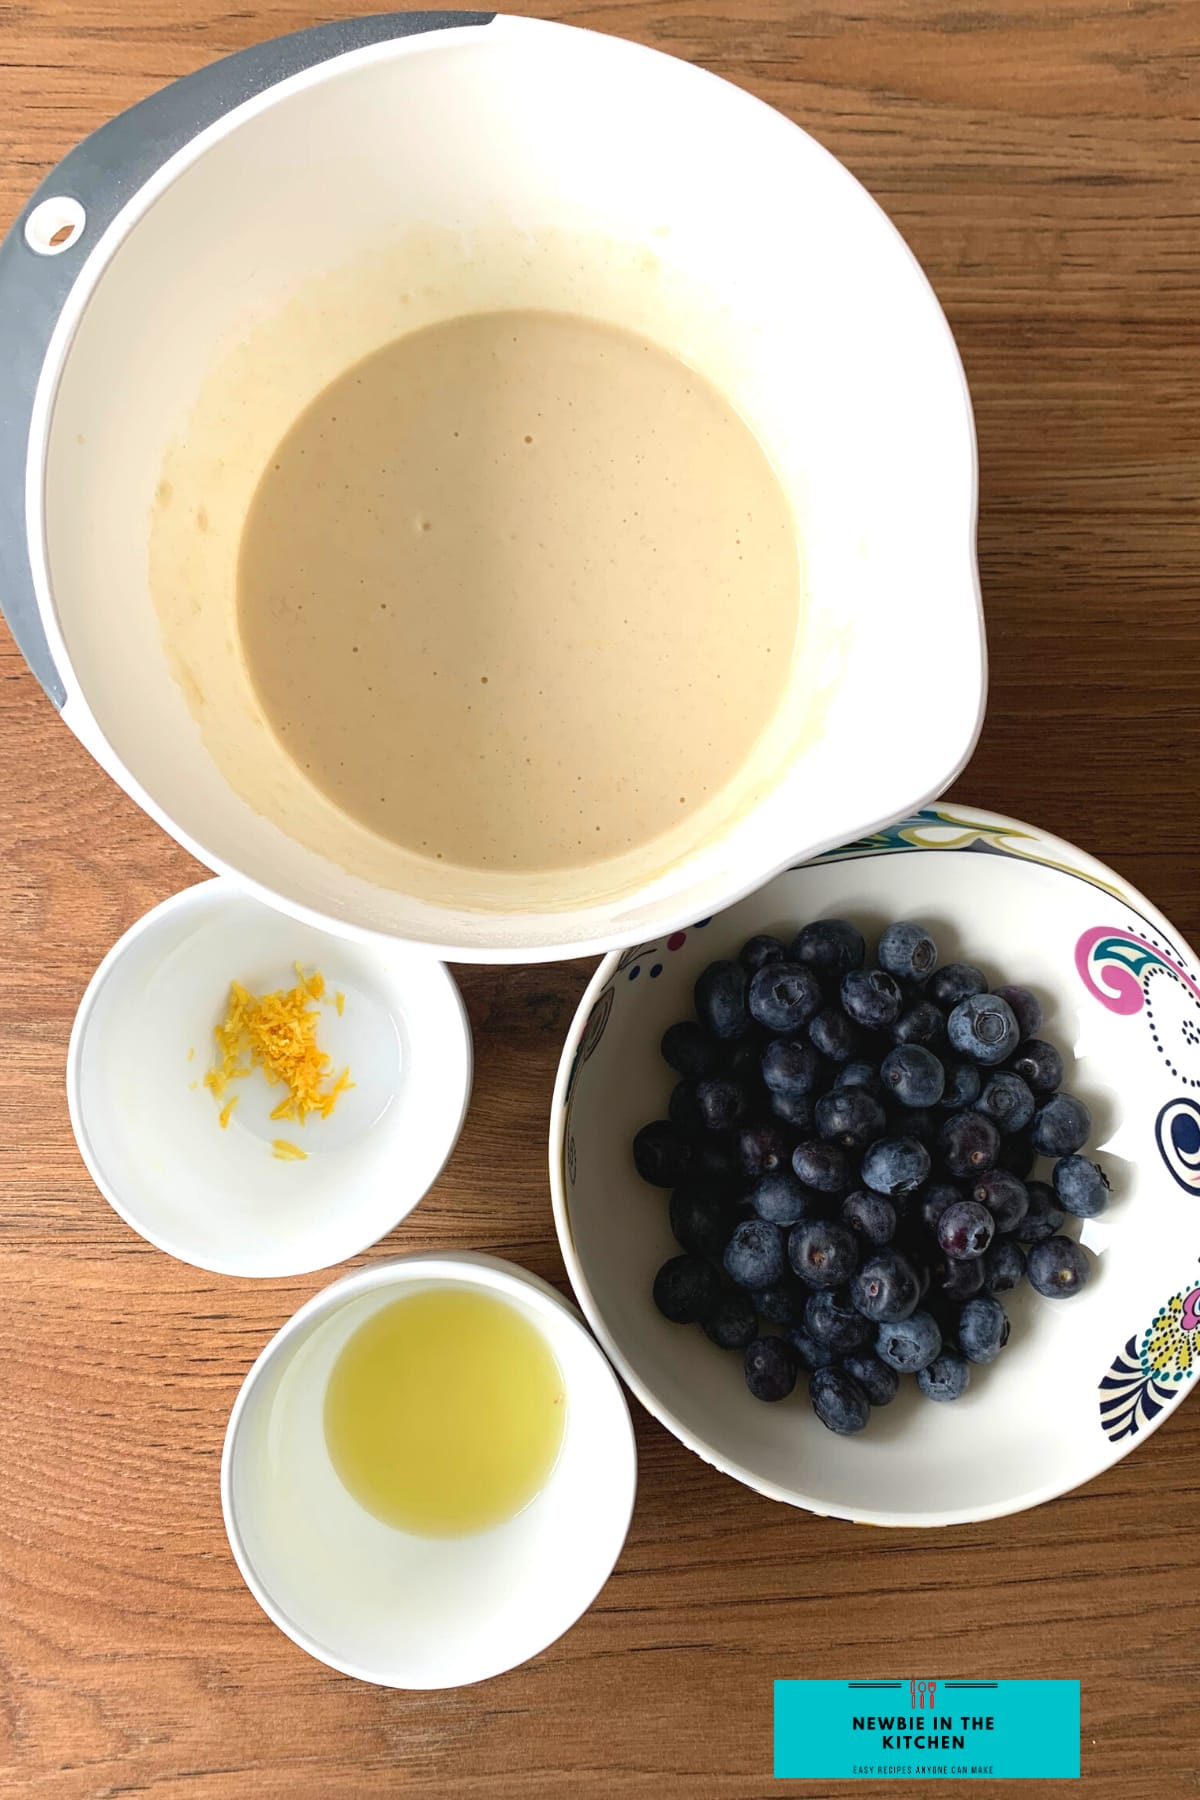 Fluffy Blueberry and Lemon Pancakes, ingredients ready